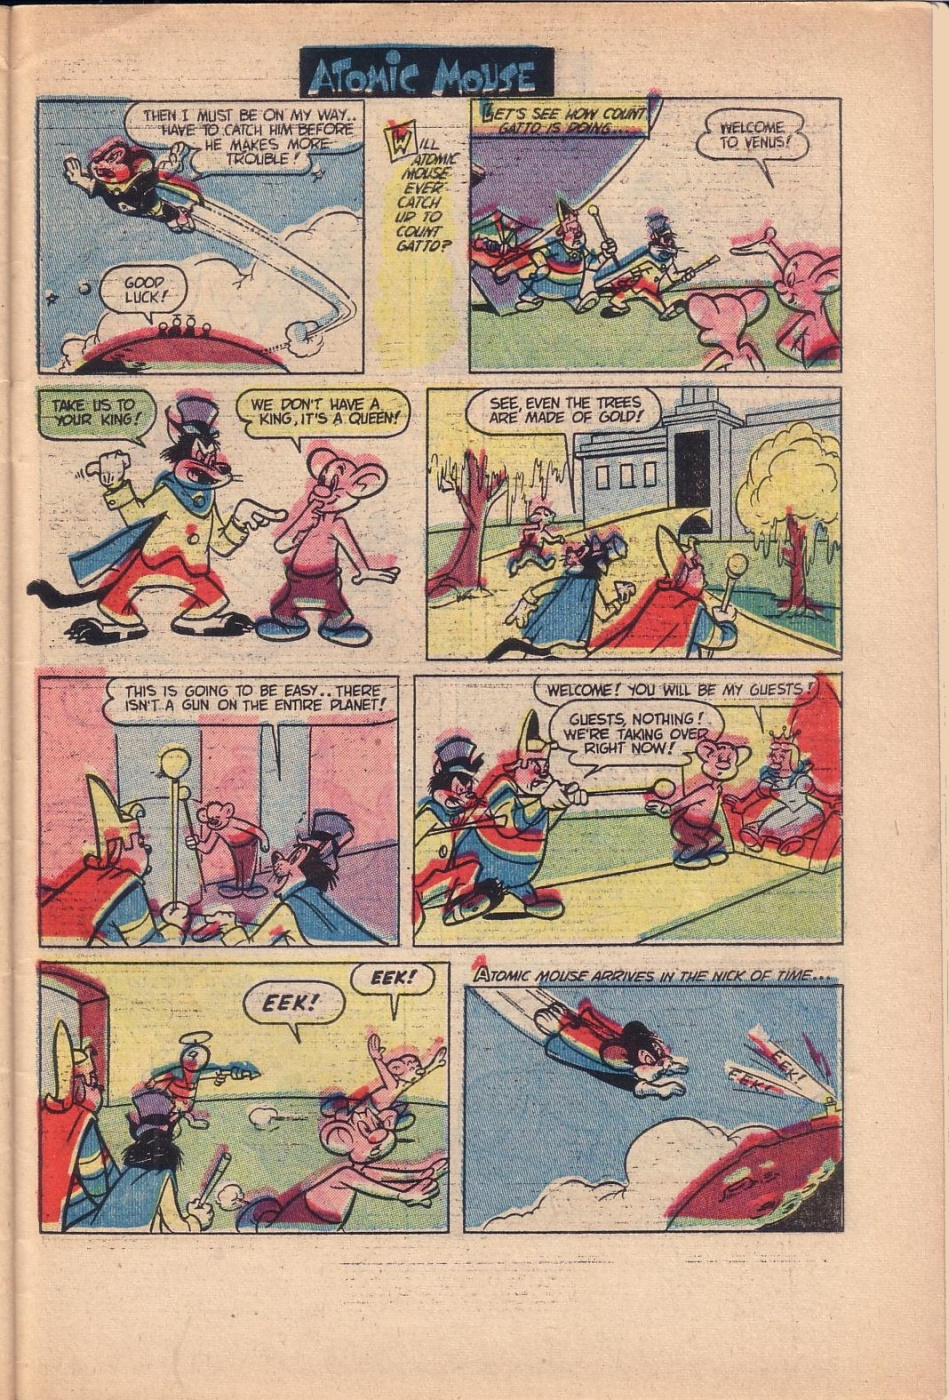 Atomic Mouse Comics - Funny Comics (31)